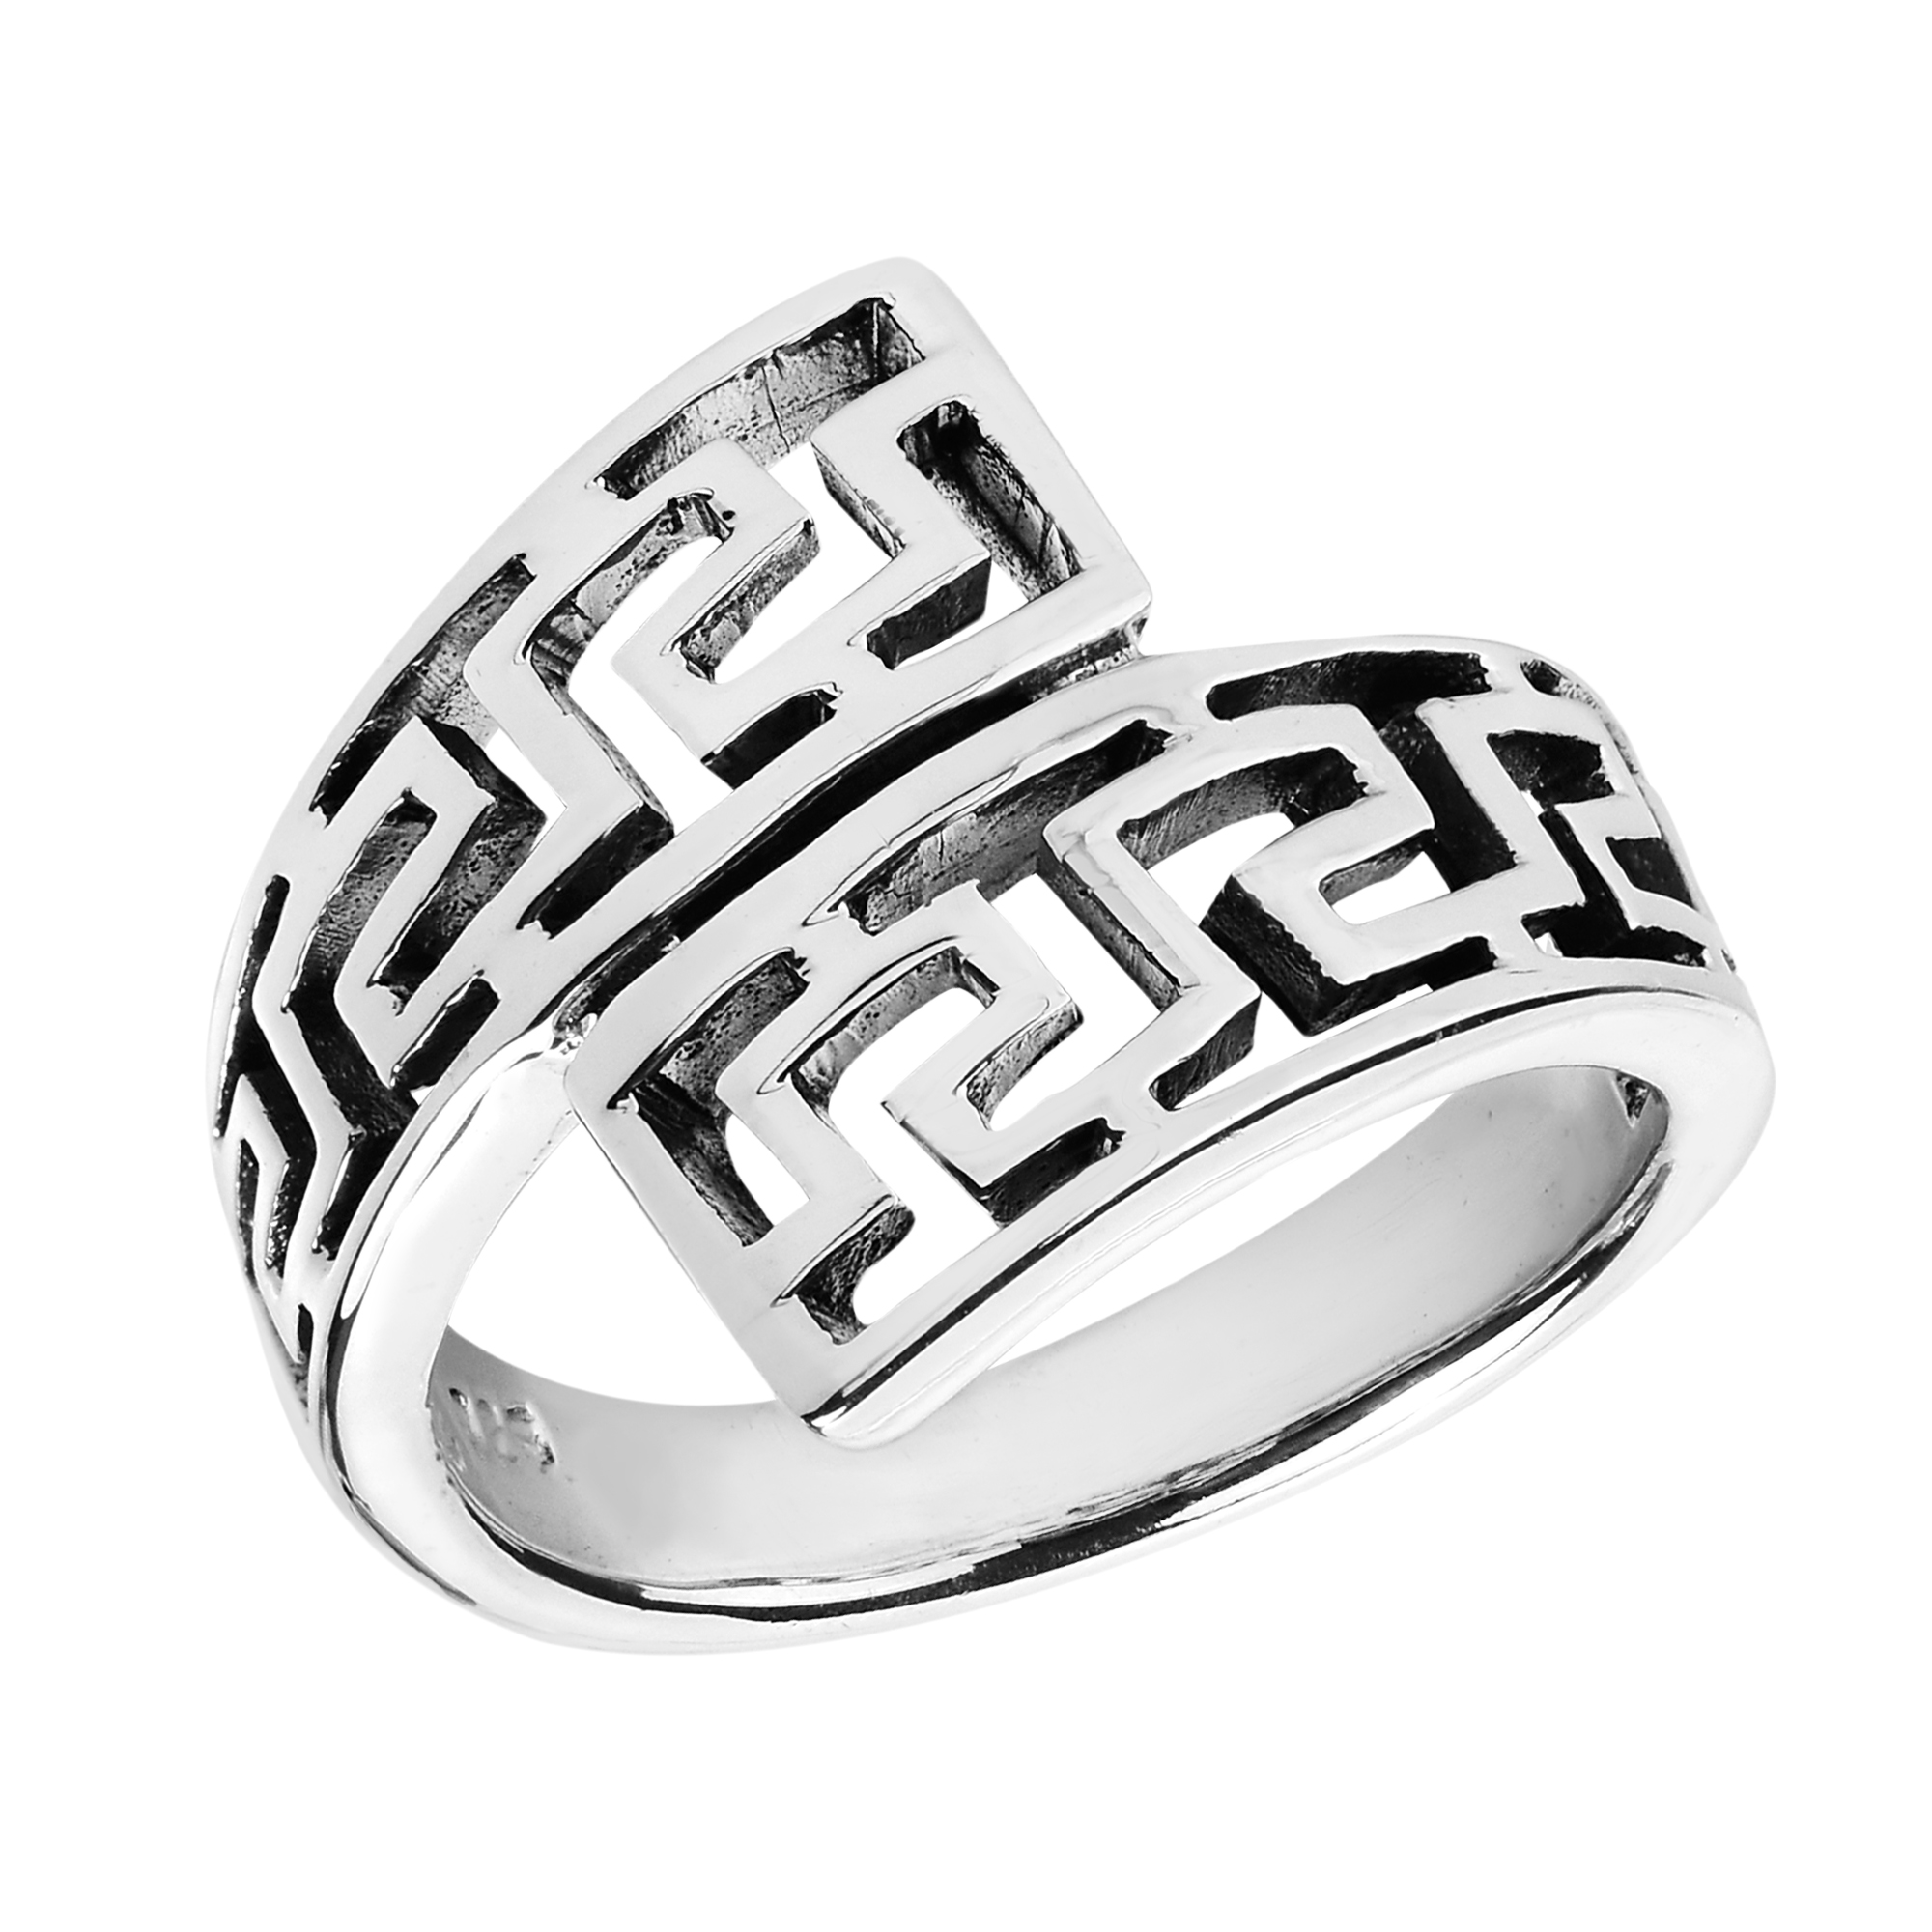 rings ring online lettering women crystal versace uk fancy greek store diamond large engagement for